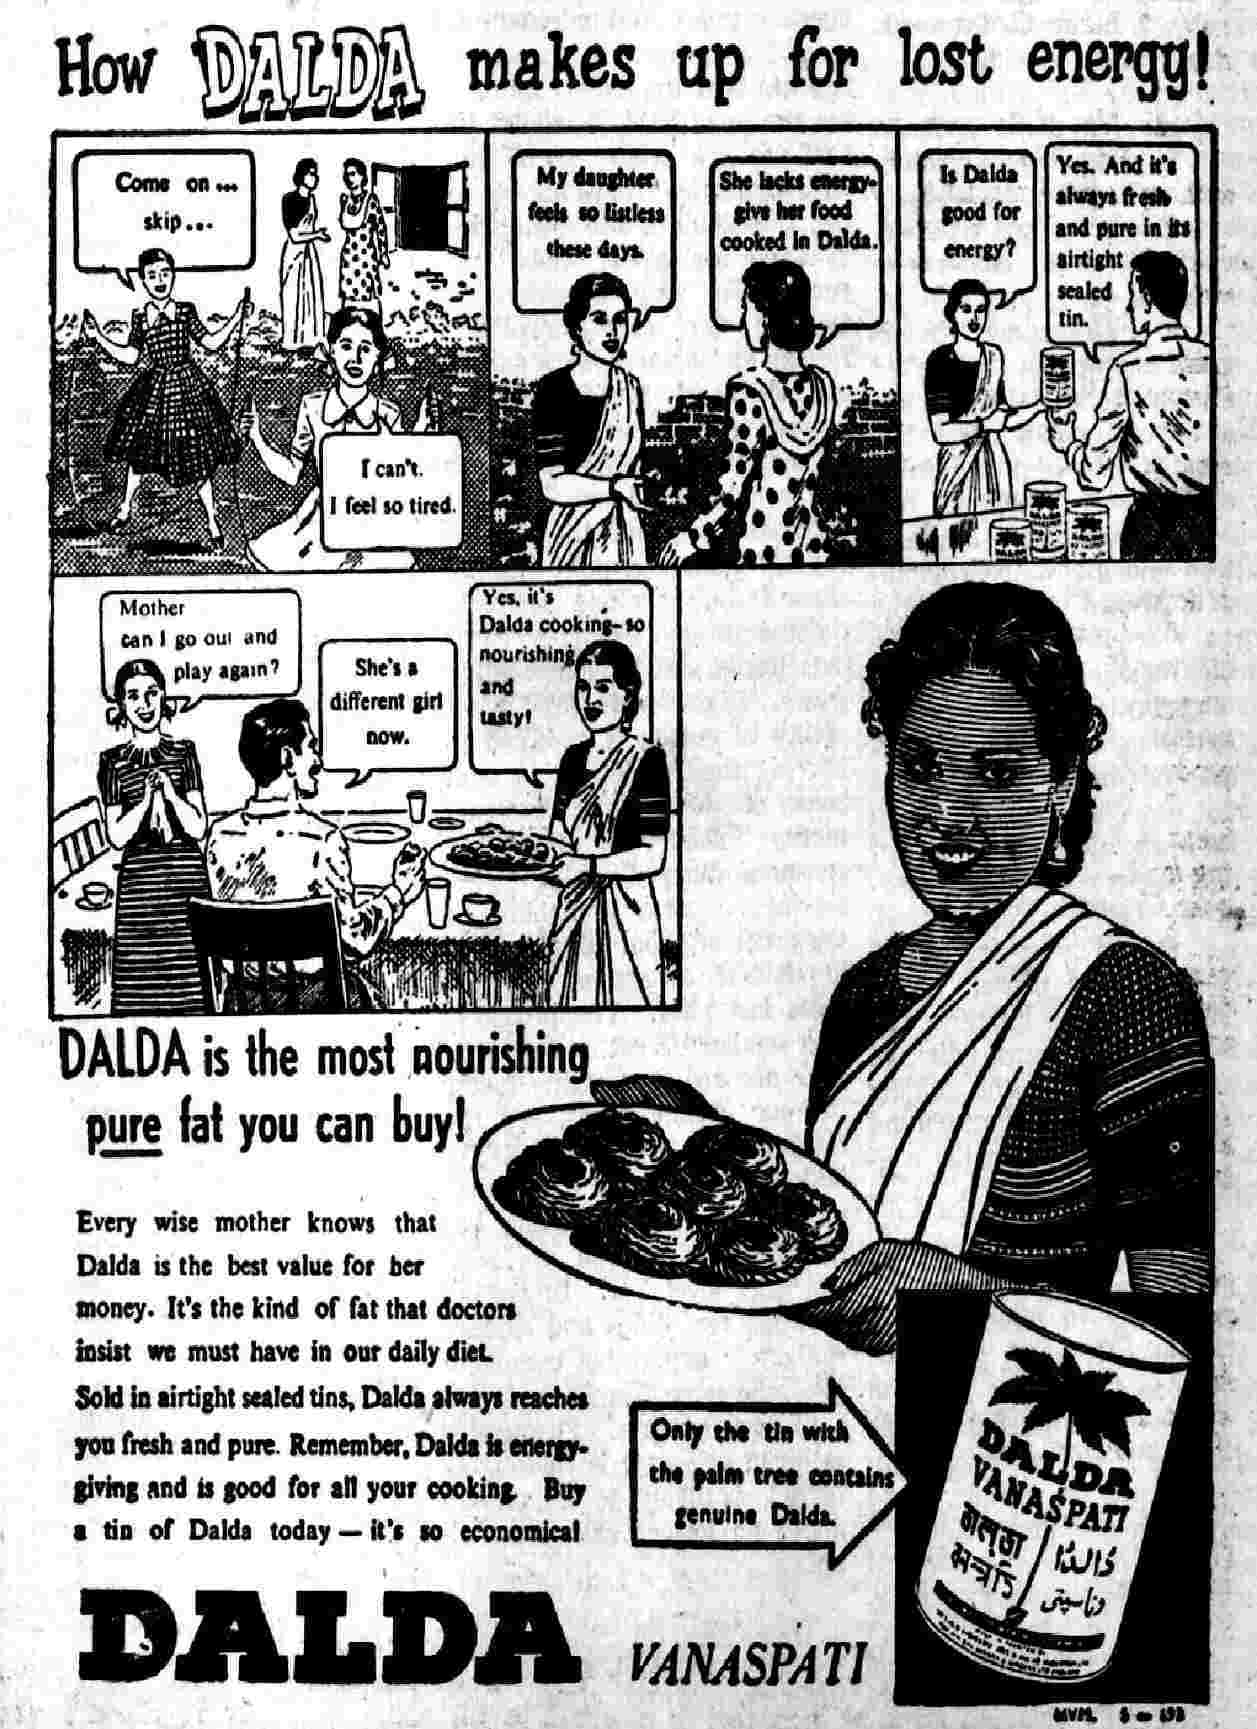 Dalda's ad from 1955